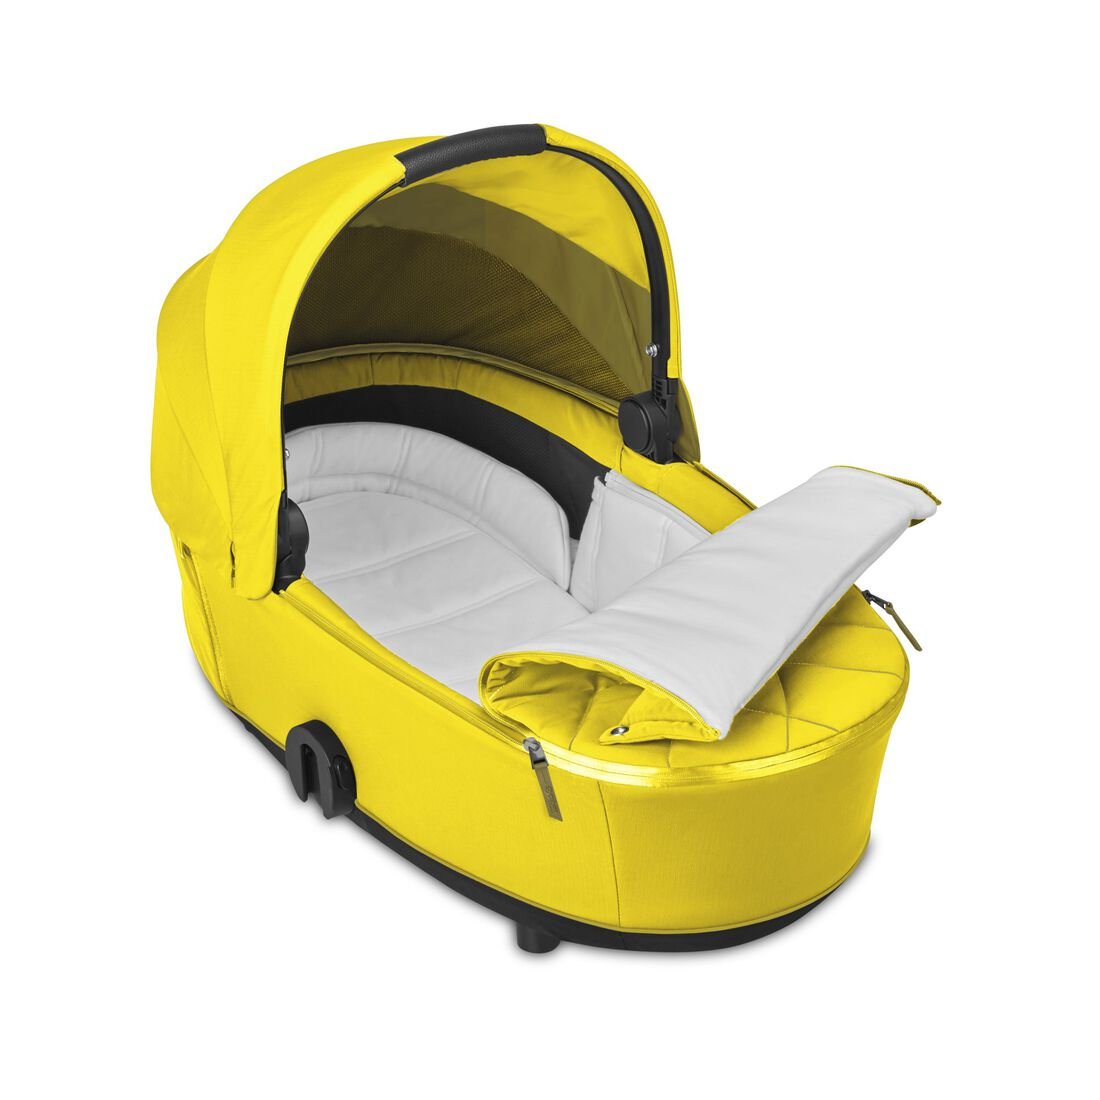 CYBEX Mios Lux Carry Cot - Mustard Yellow in Mustard Yellow large image number 2